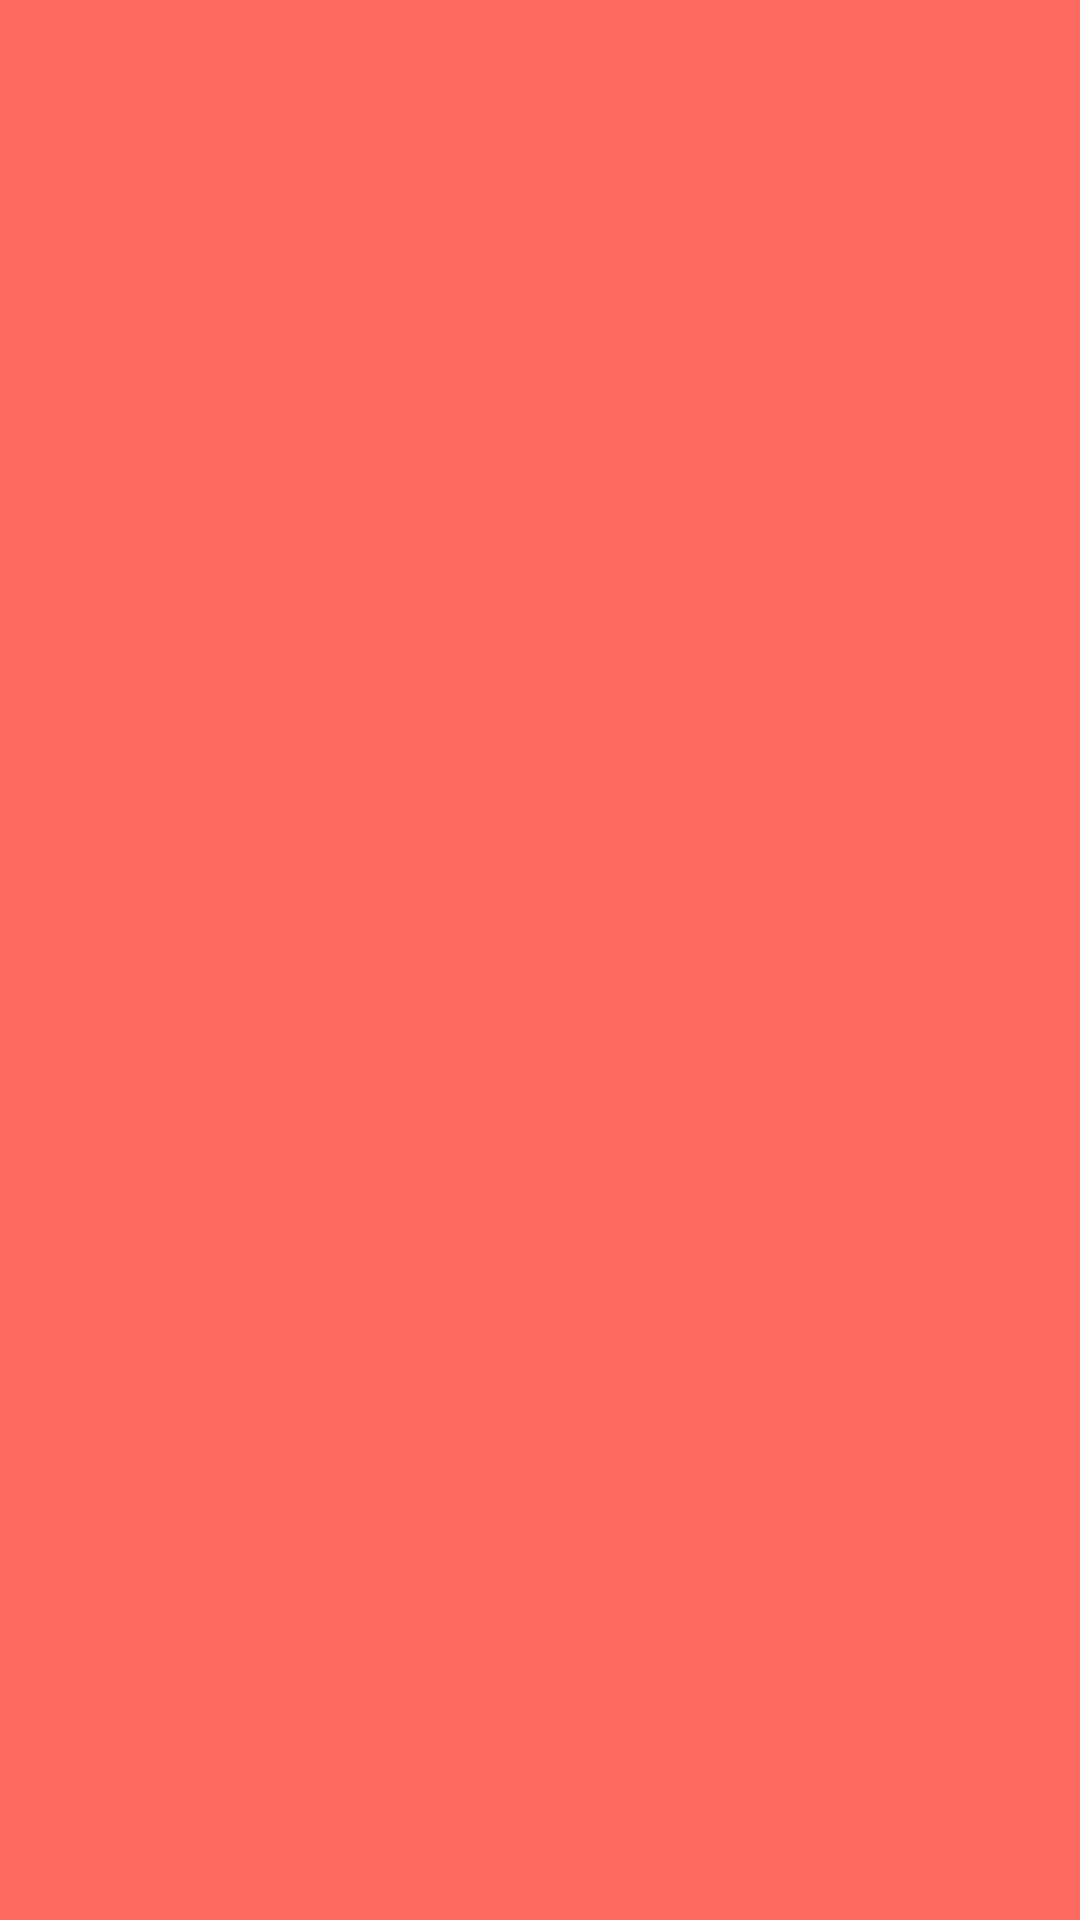 1080x1920 Pastel Red Solid Color Background